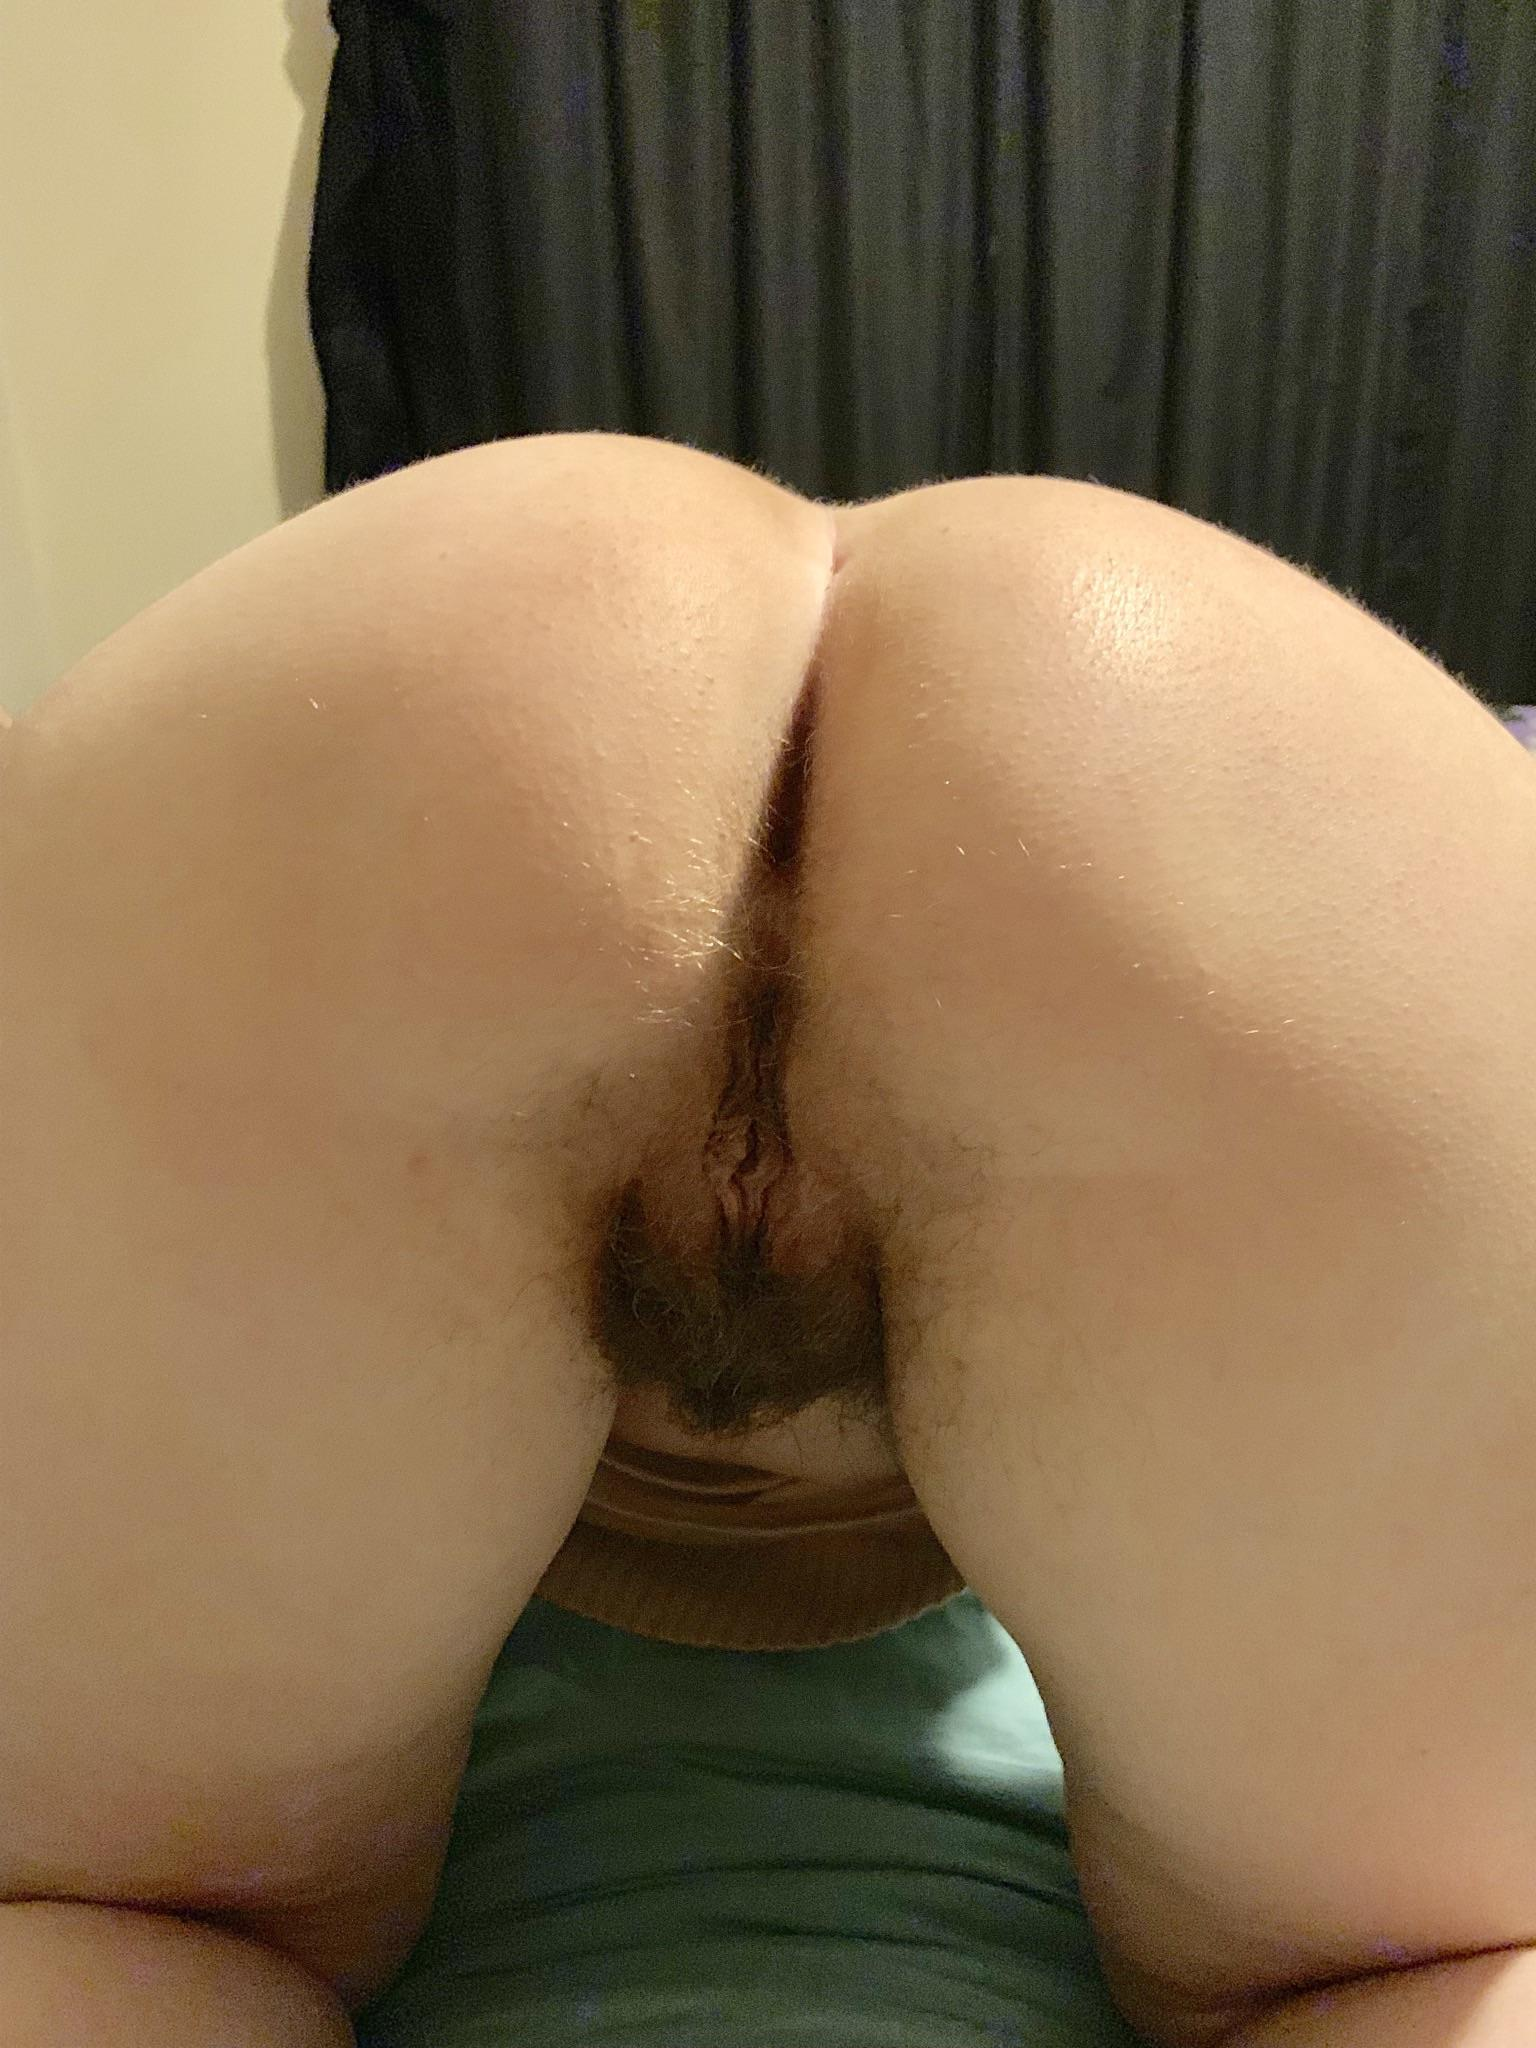 Showing my wife on hairy photo 4